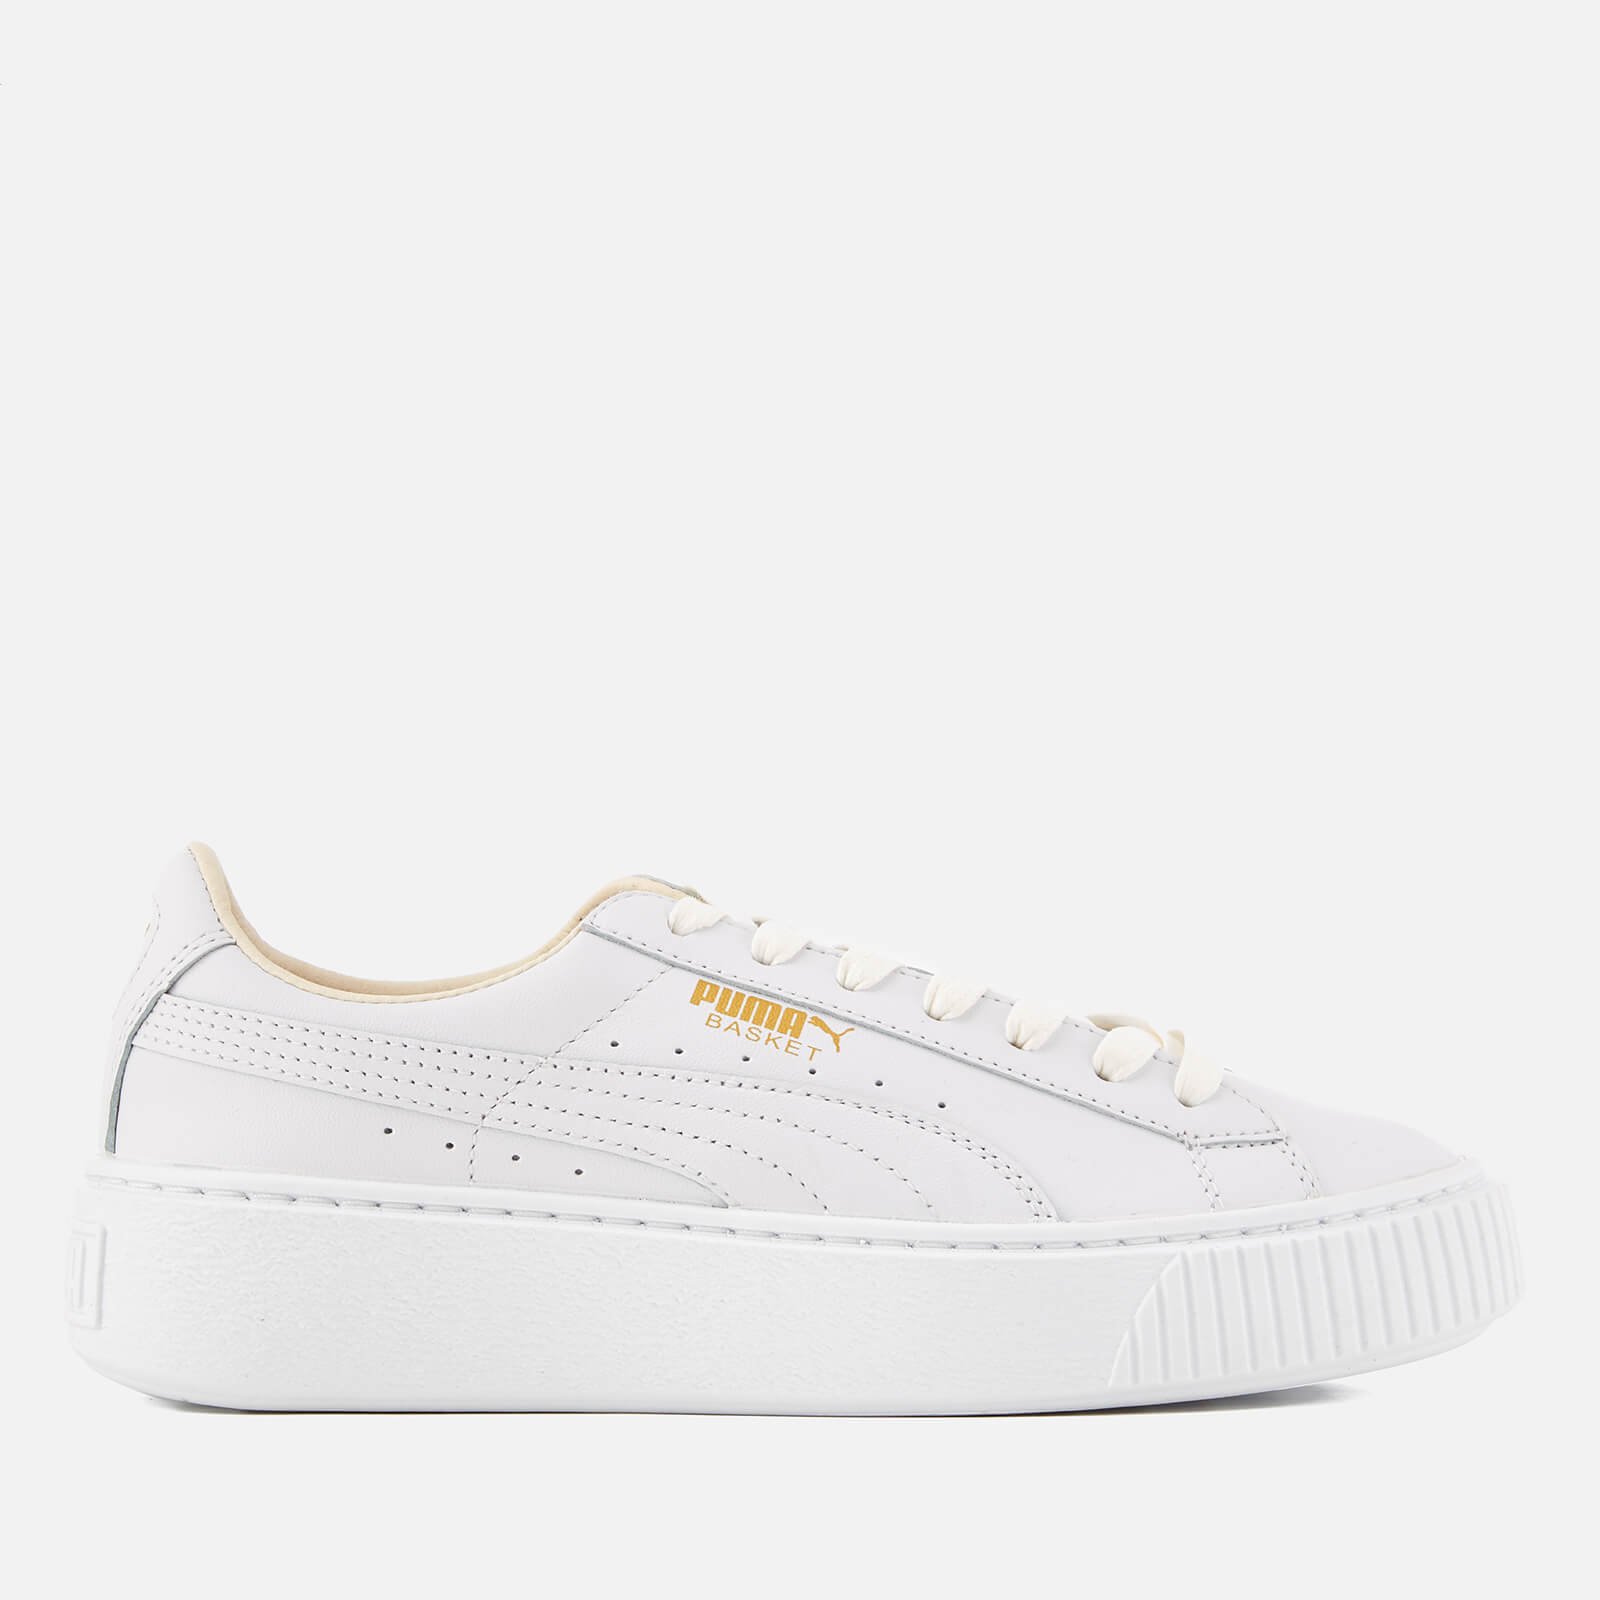 8a96fd91d28 Puma Women s Basket Platform Core Trainers - Puma White Gold - Free UK  Delivery over £50